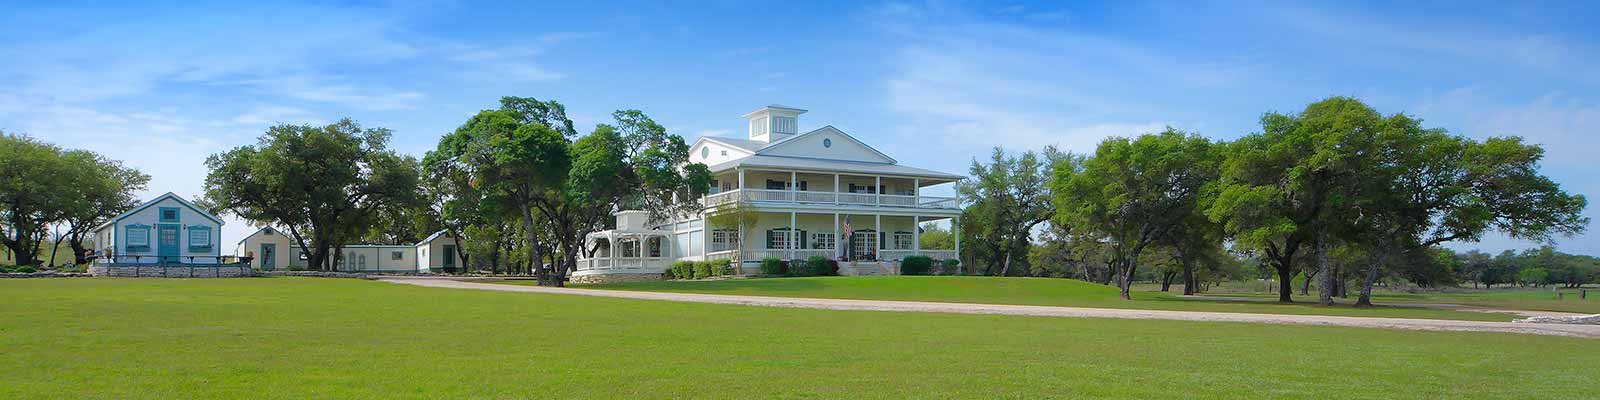 Sage Hill Bed And Breakfast Texas